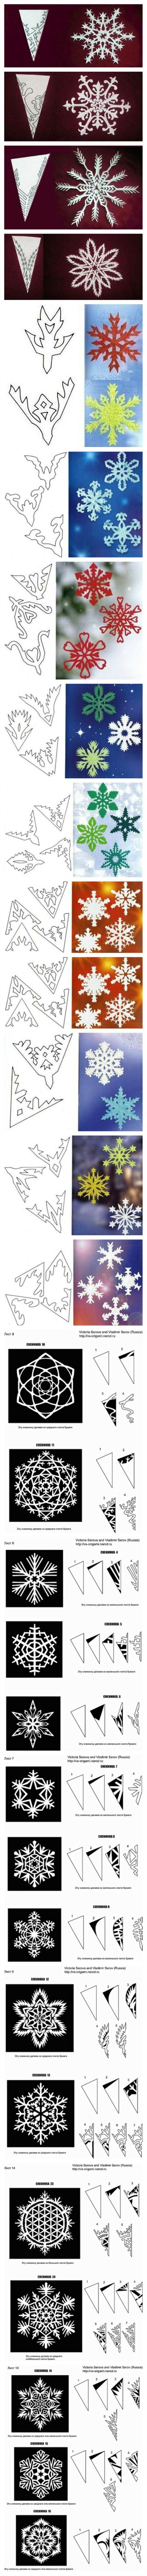 How to Make Excellent Paper Snowflakes by joybx: Beyond the basics!